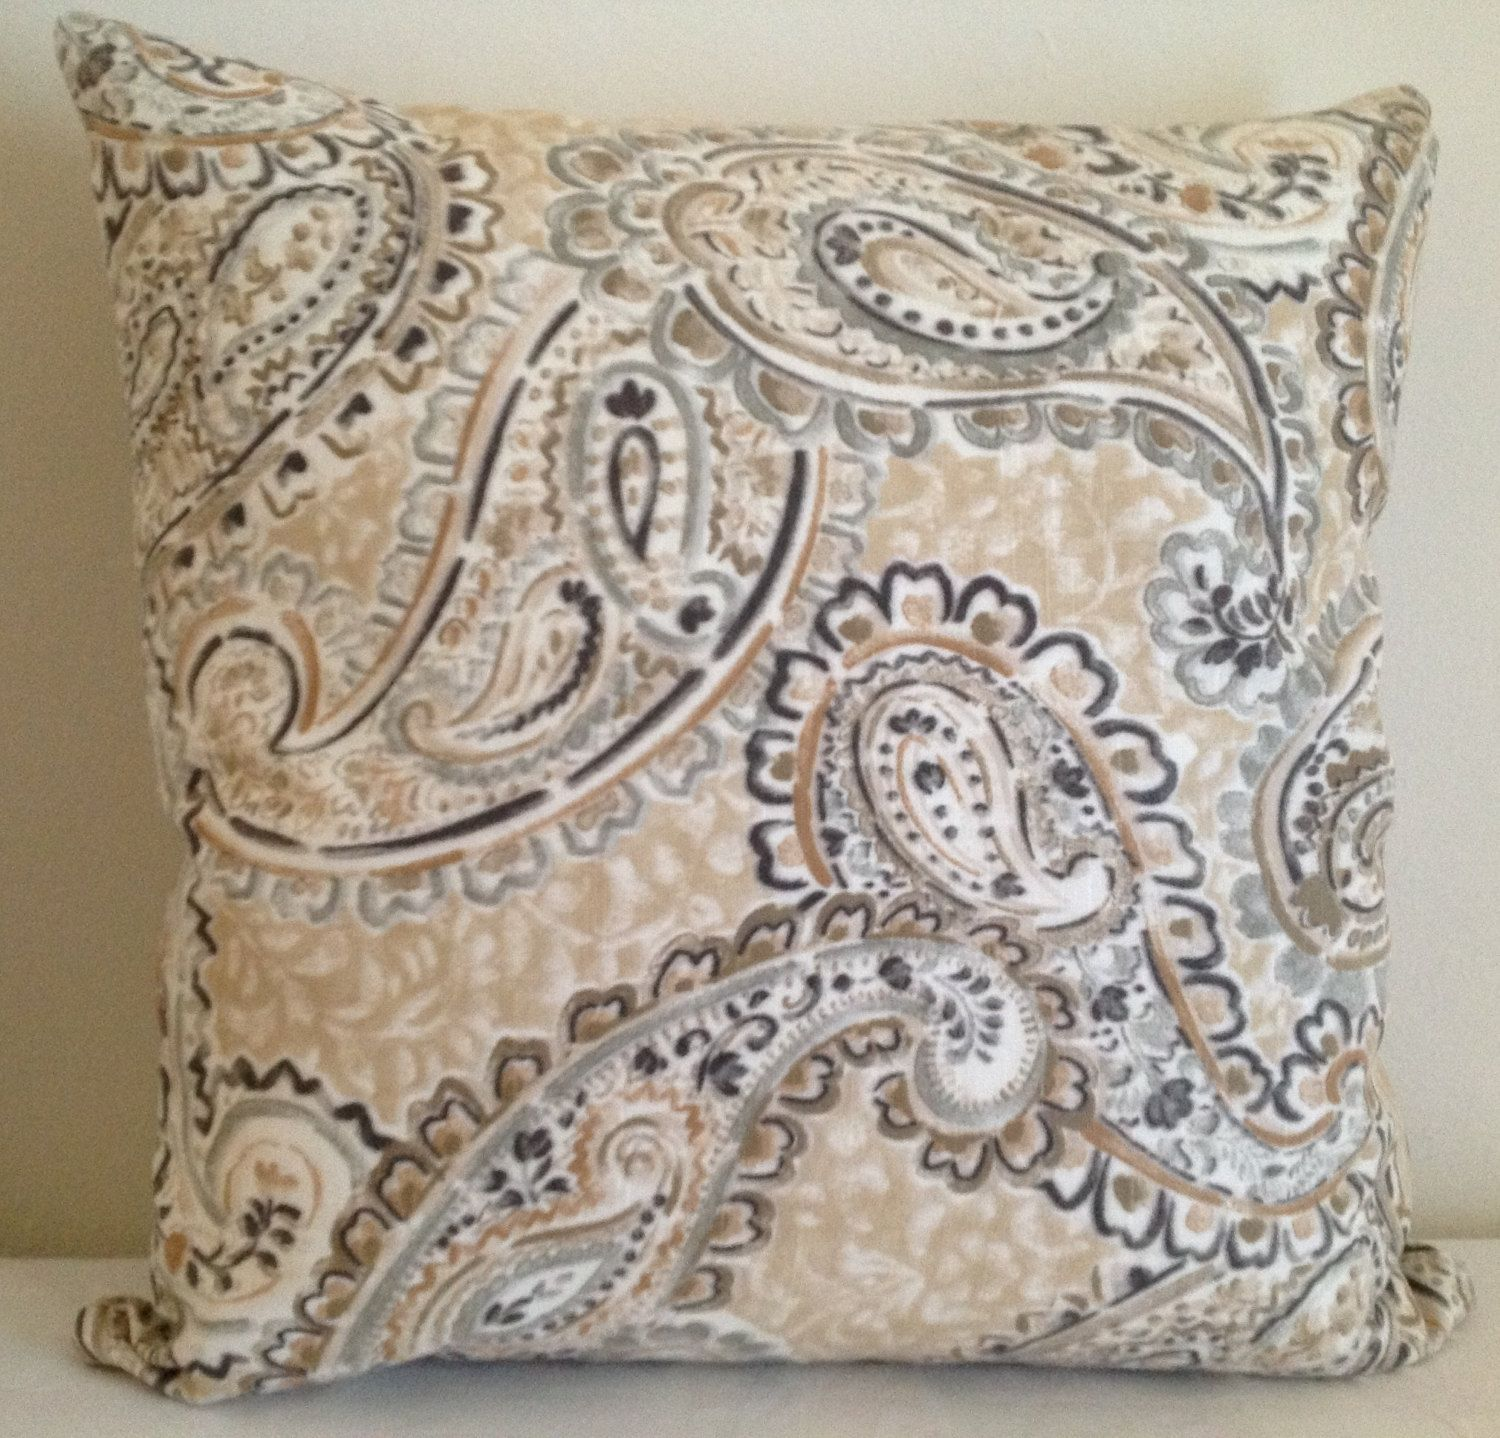 Decorative Paisley Throw Pillow Cover,20x20 Accent Pillow,brown,grey,black,white  Background